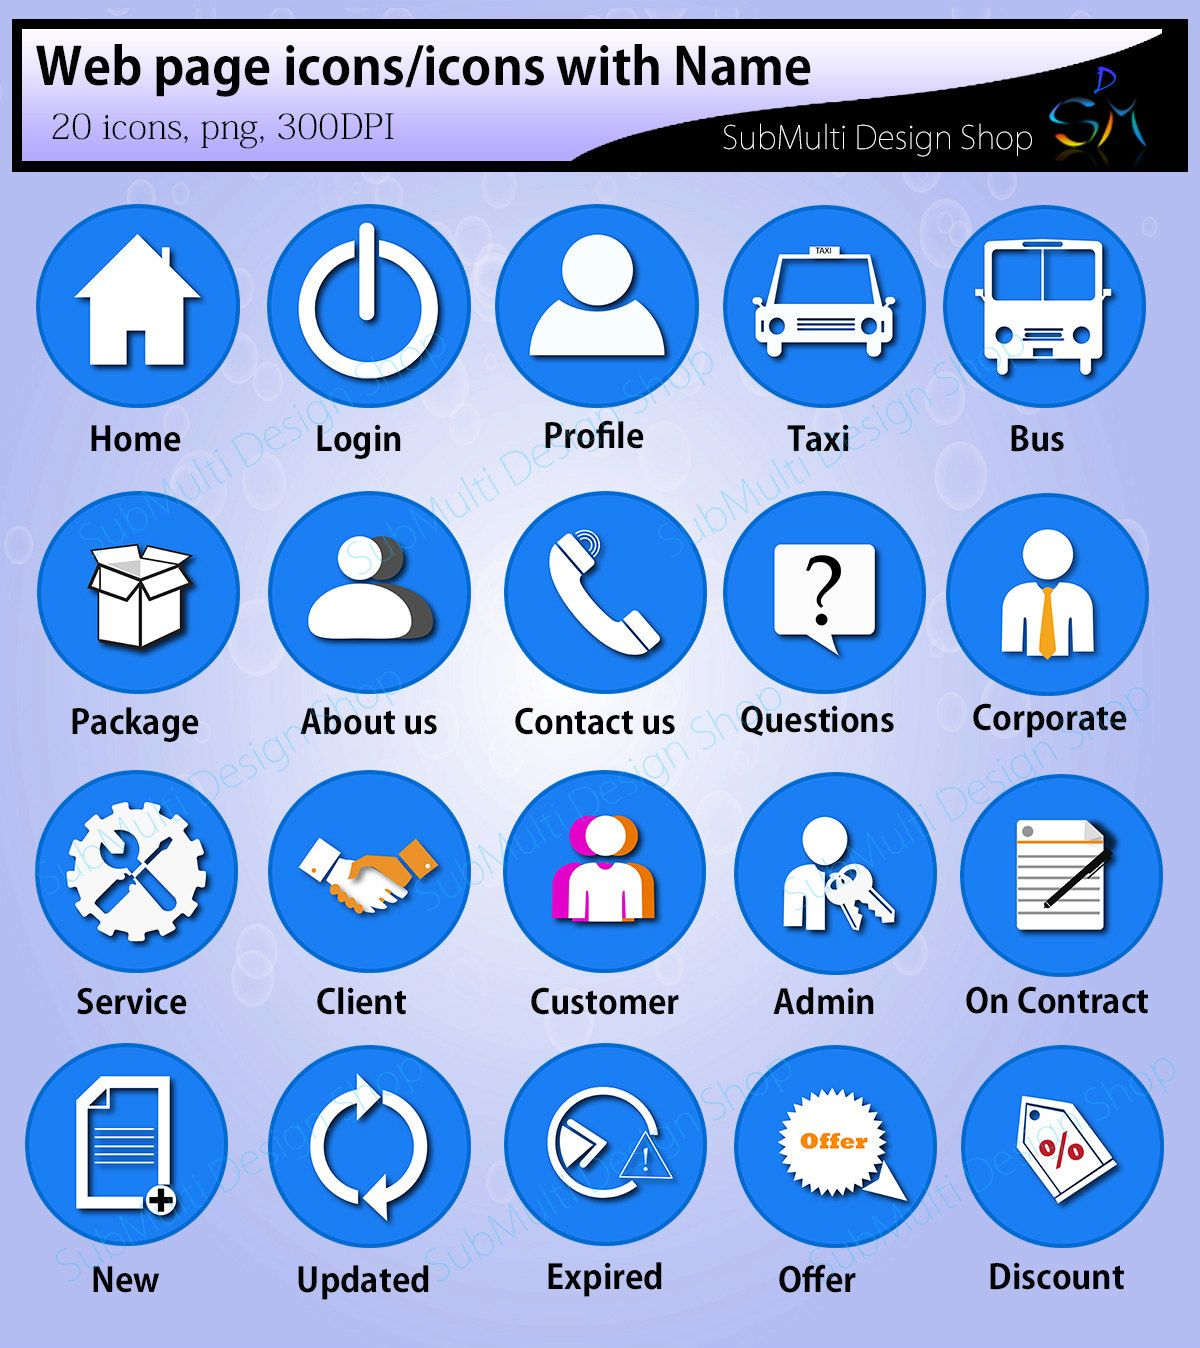 web page icons / graphic icons / icons / web icons